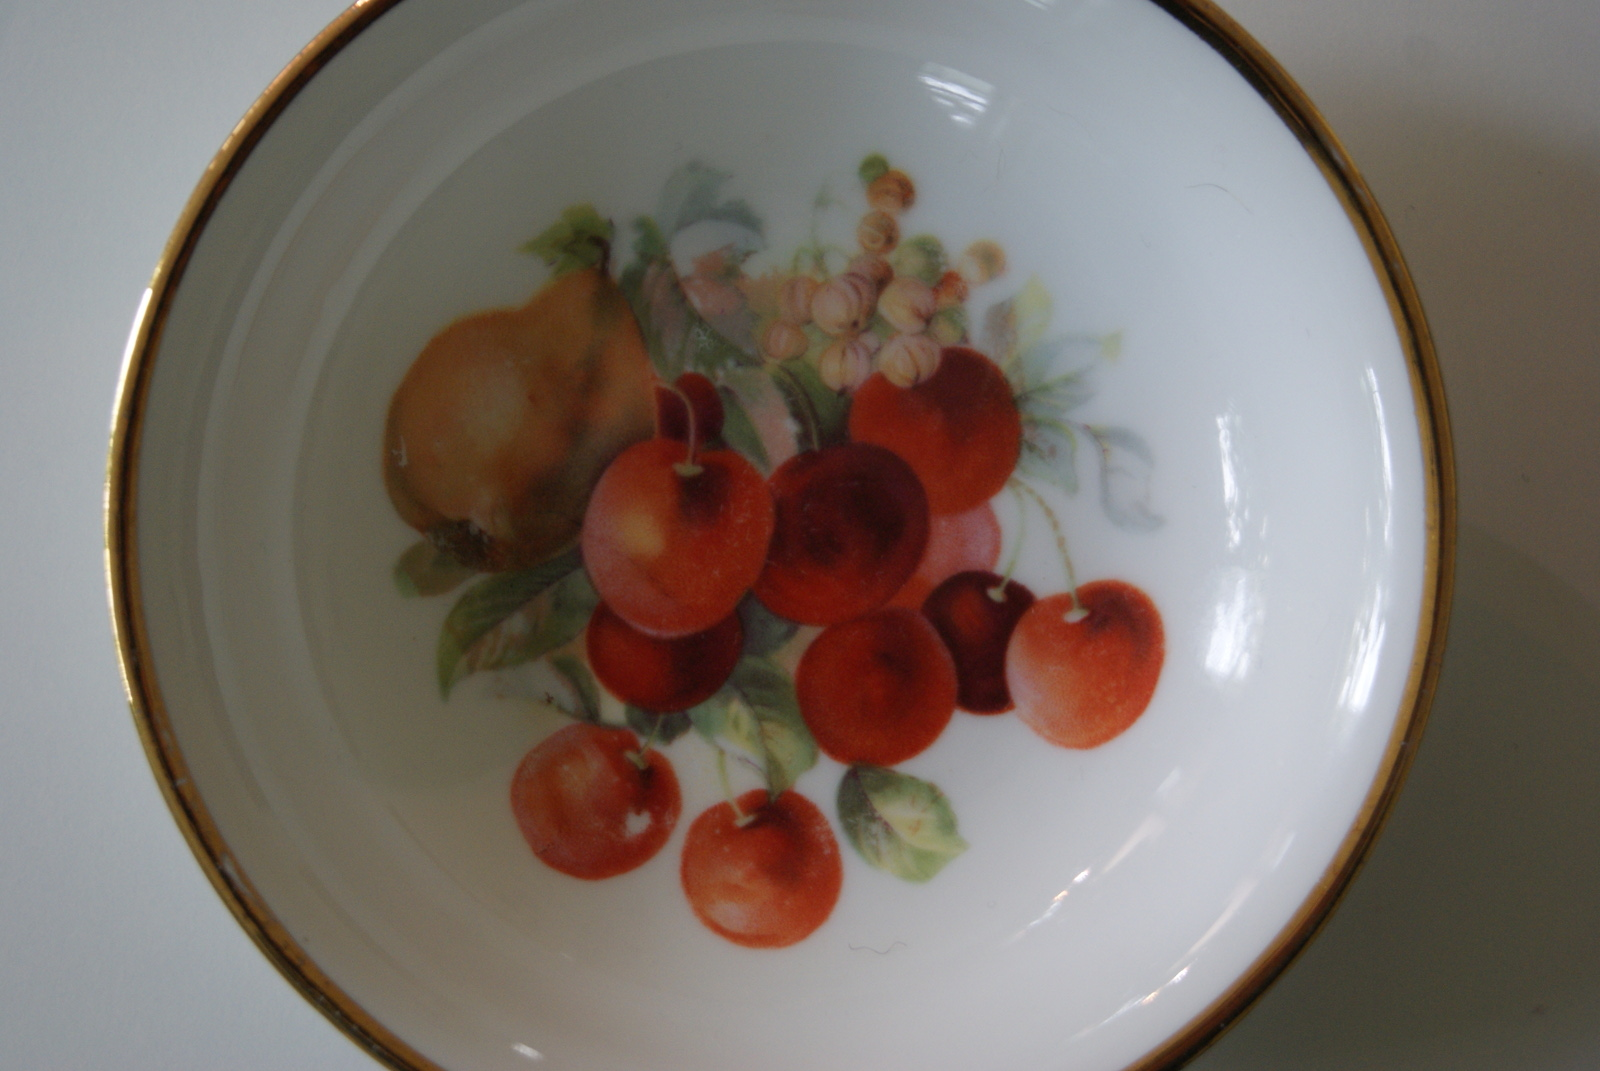 Porsgrund dessert bowl with fruits - pears, and cherries